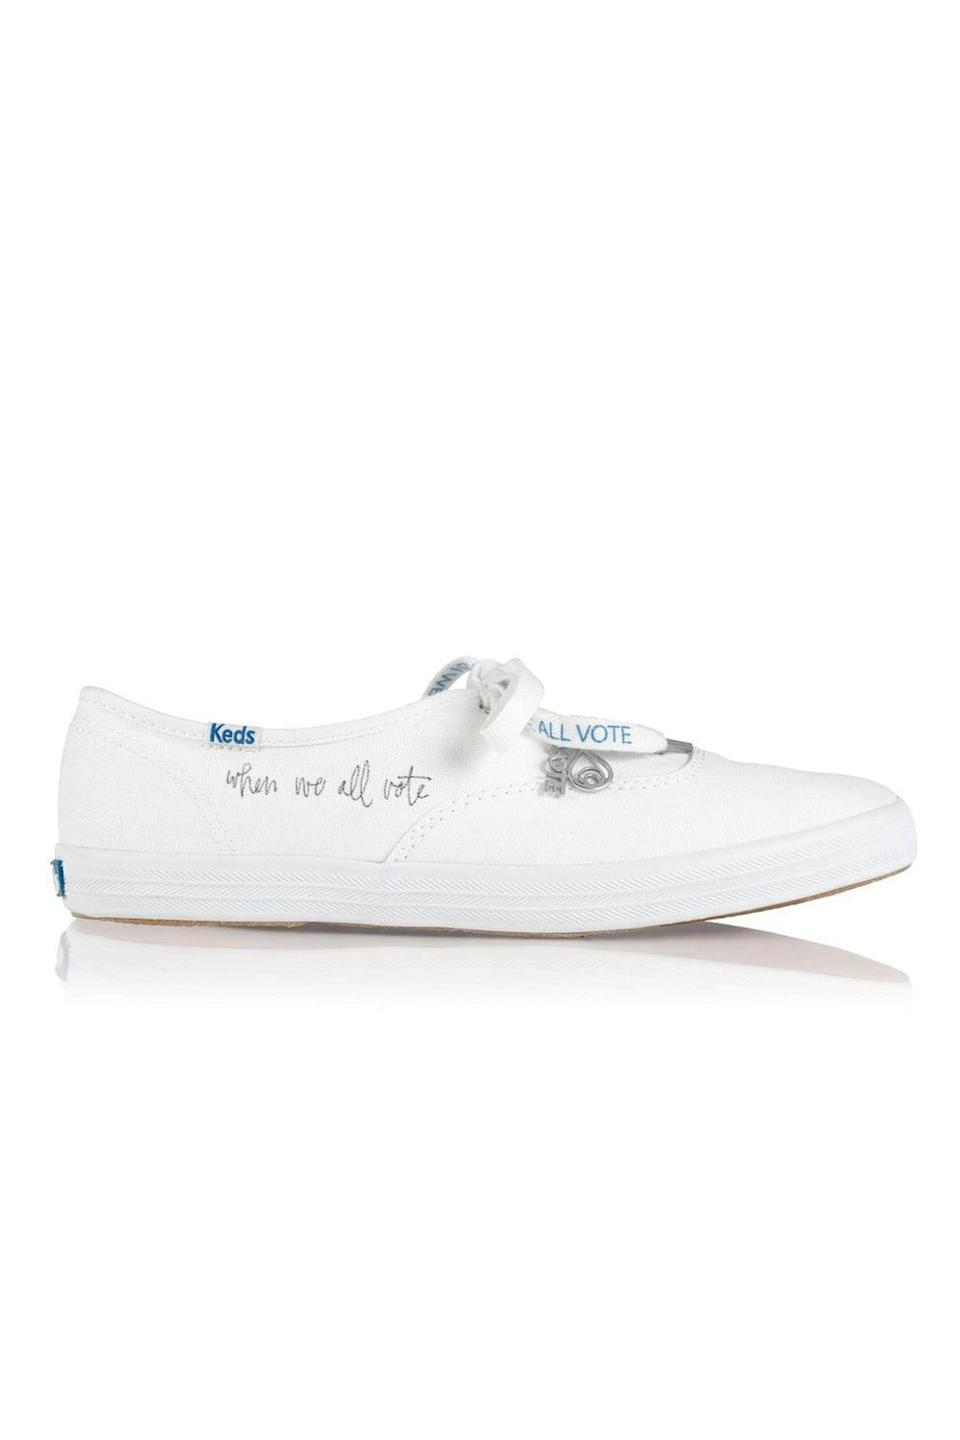 """<p>brothervellies.com</p><p><strong>$95.00</strong></p><p><a href=""""https://brothervellies.com/products/when-we-all-vote-x-brother-vellies-canvassing-sneakers"""" rel=""""nofollow noopener"""" target=""""_blank"""" data-ylk=""""slk:Shop Now"""" class=""""link rapid-noclick-resp"""">Shop Now</a></p><p>Pair your """"Vote"""" socks with these Keds sneakers with special laces. Brother Vellies will be donating 100 percent of the purchase price to the organization When We All Vote. </p>"""